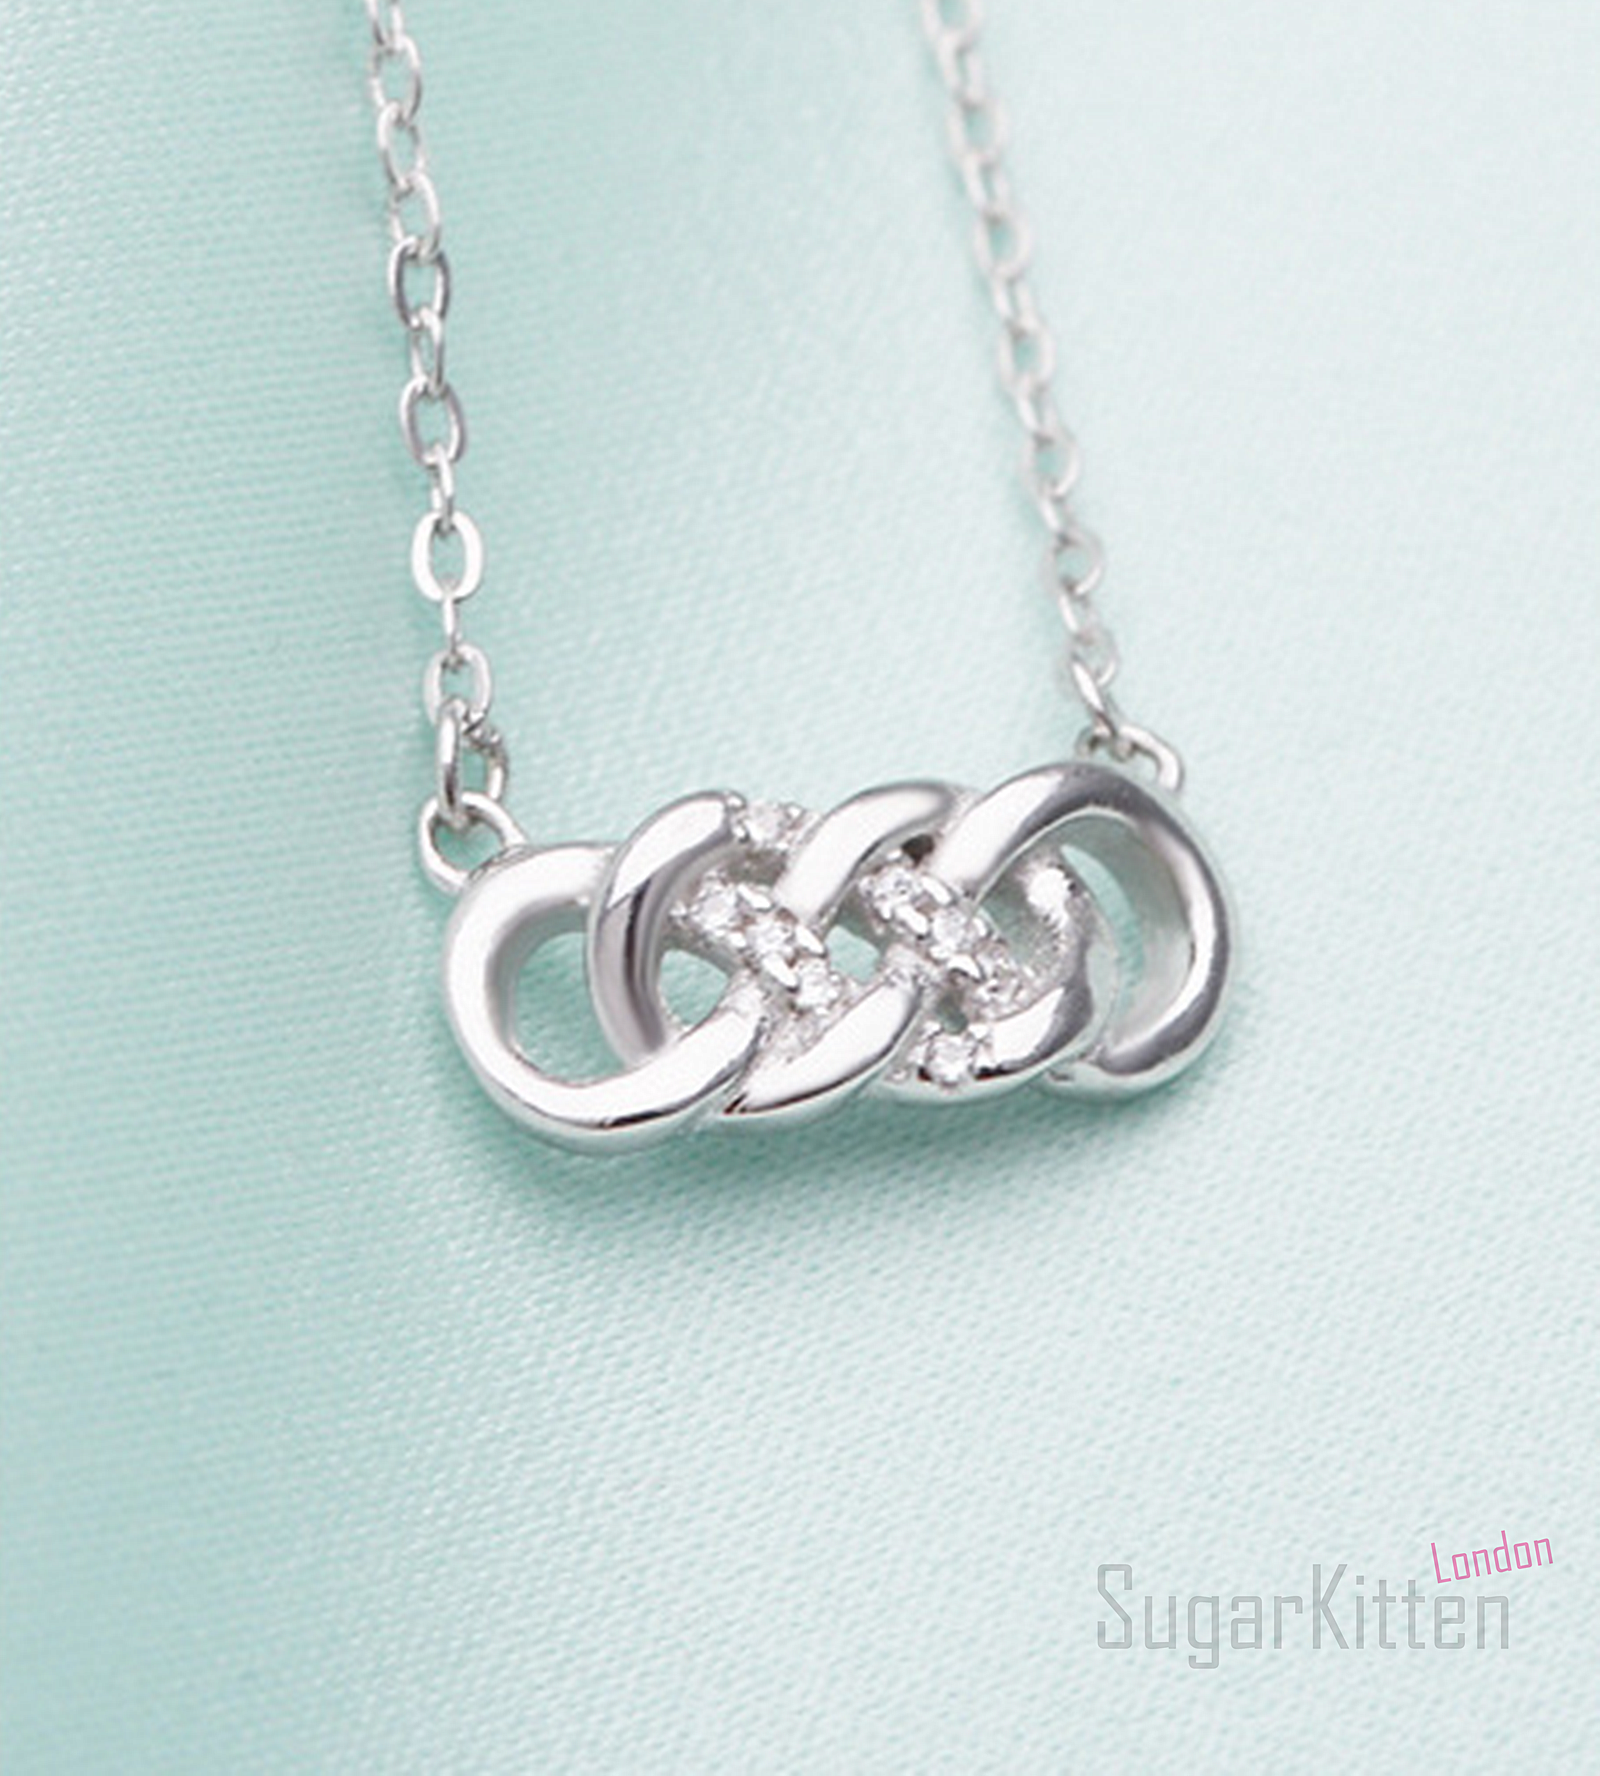 Double infinity necklace 925 sterling silver with crystal cz double infinity necklace 925 sterling silver with crystal cz jewellery forever biocorpaavc Image collections